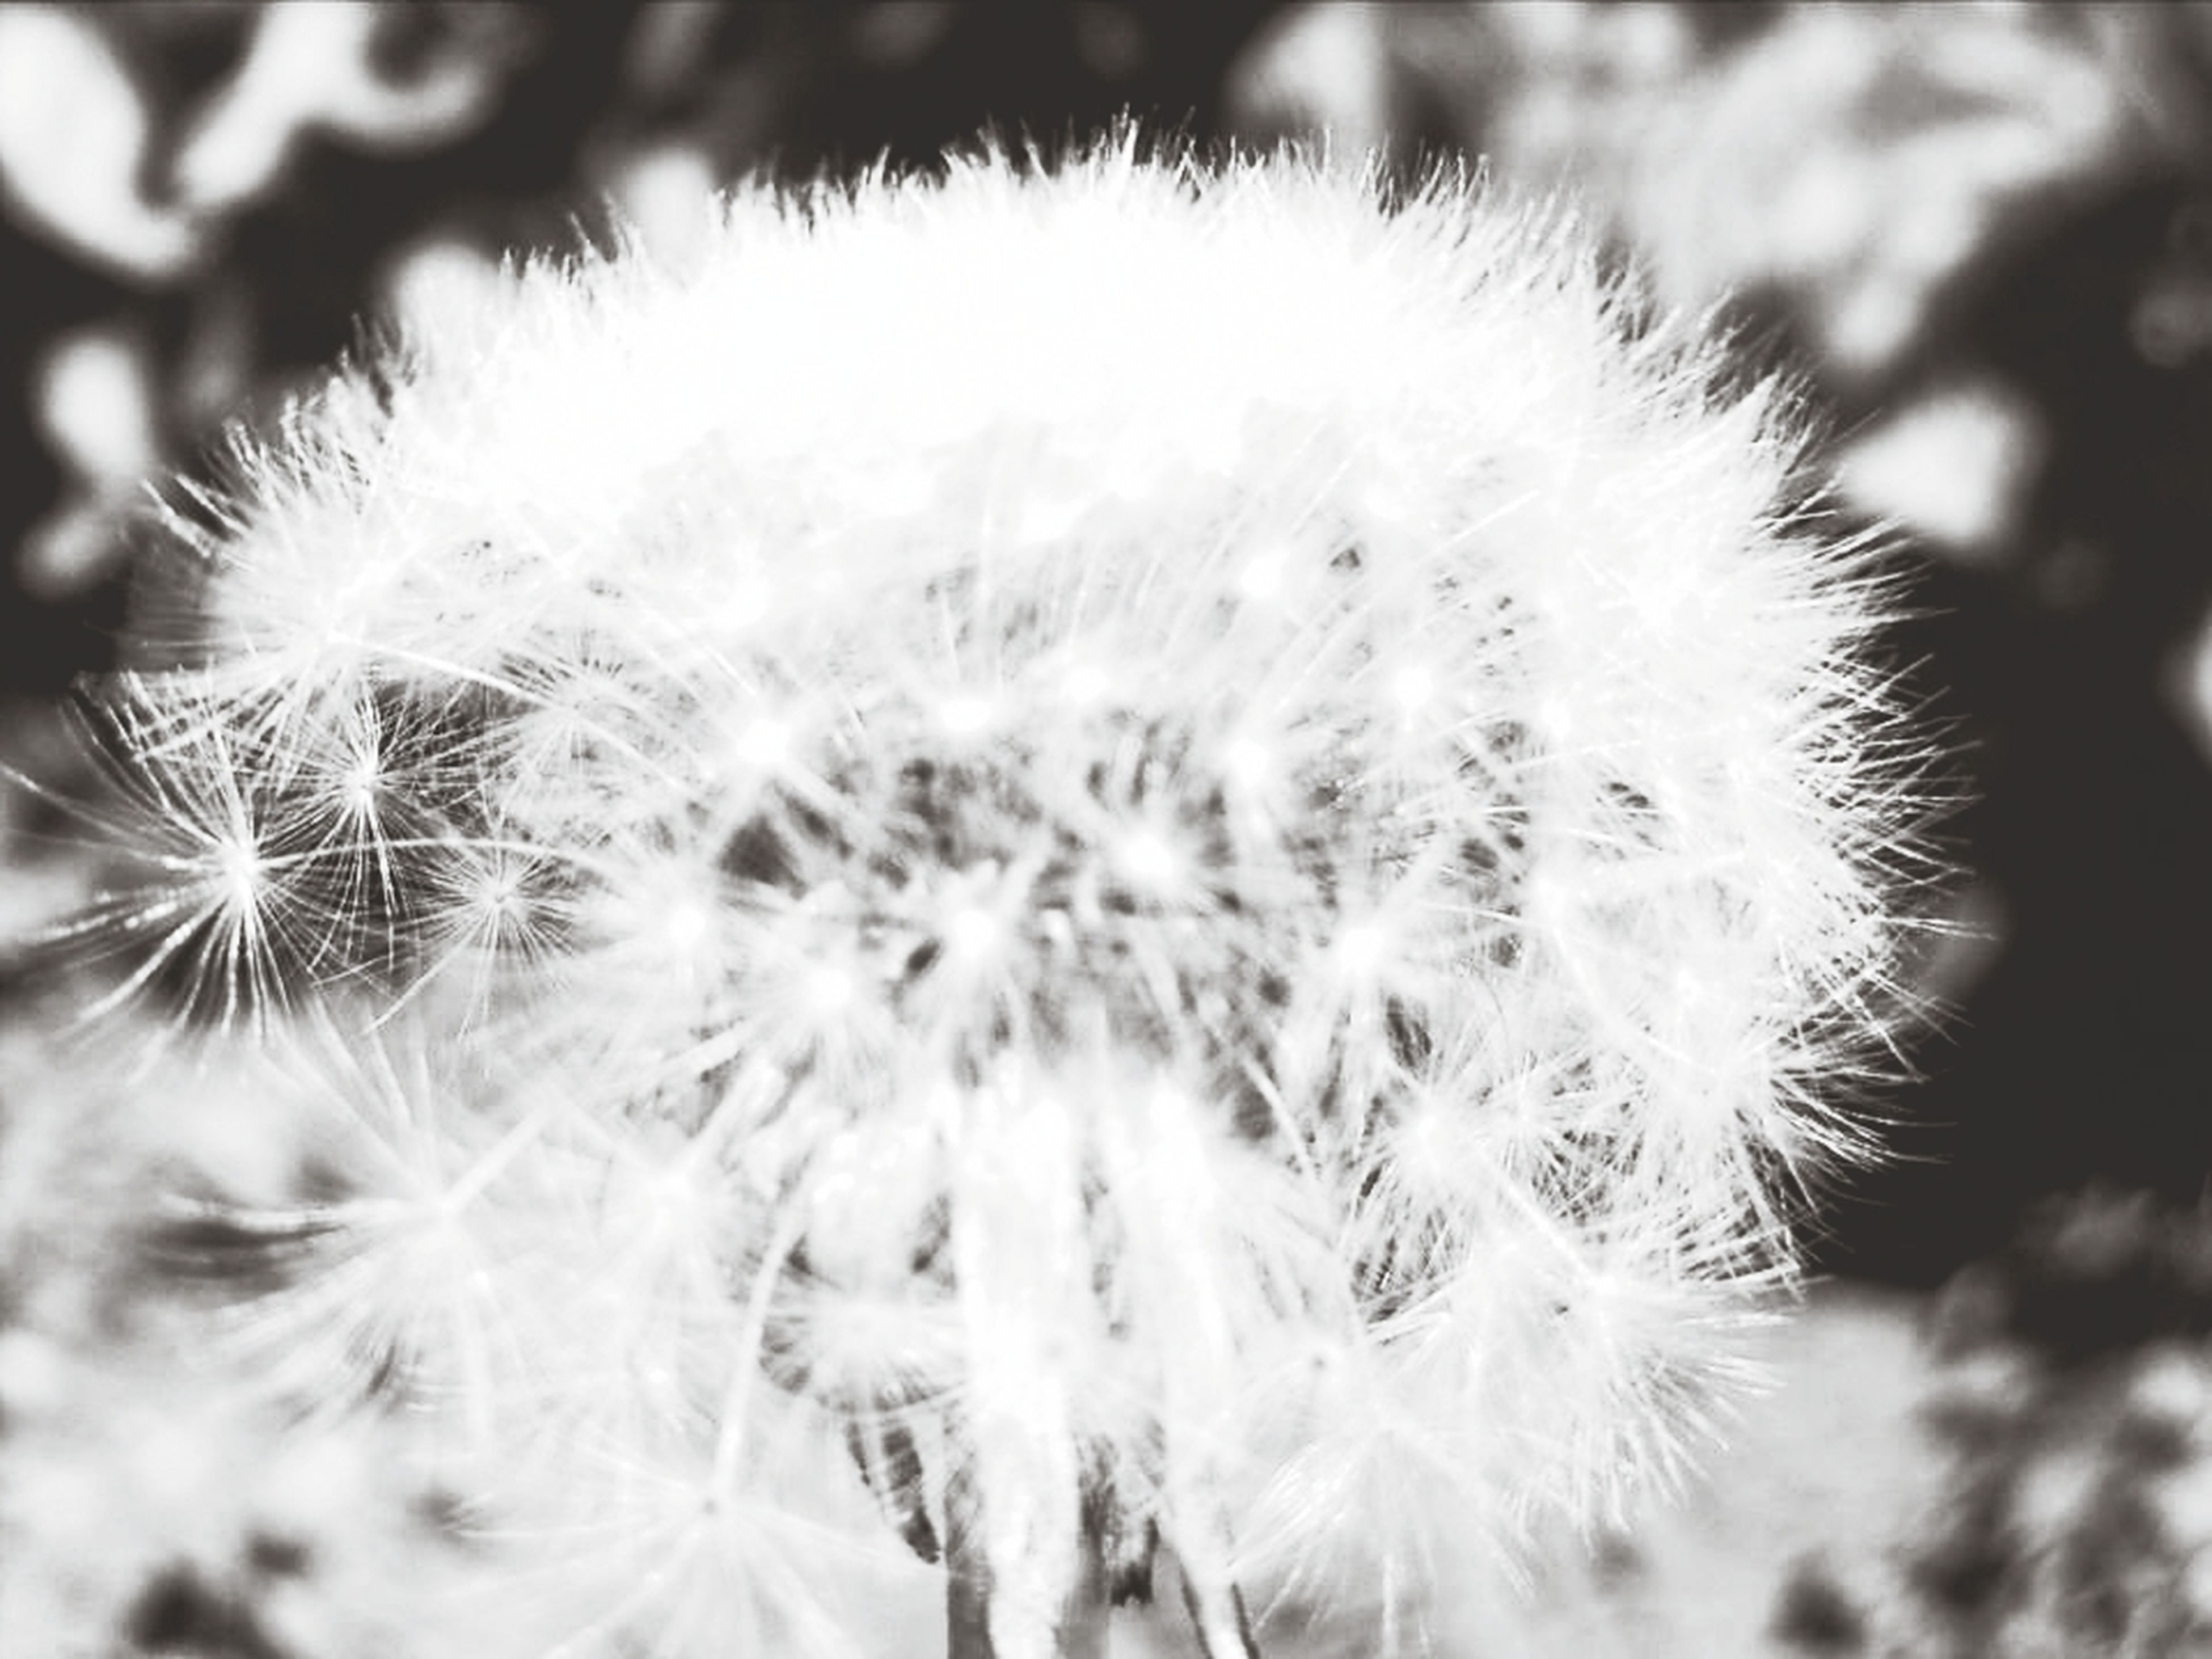 dandelion, flower, fragility, growth, close-up, focus on foreground, freshness, flower head, nature, beauty in nature, single flower, plant, softness, selective focus, uncultivated, wildflower, outdoors, dandelion seed, white color, day